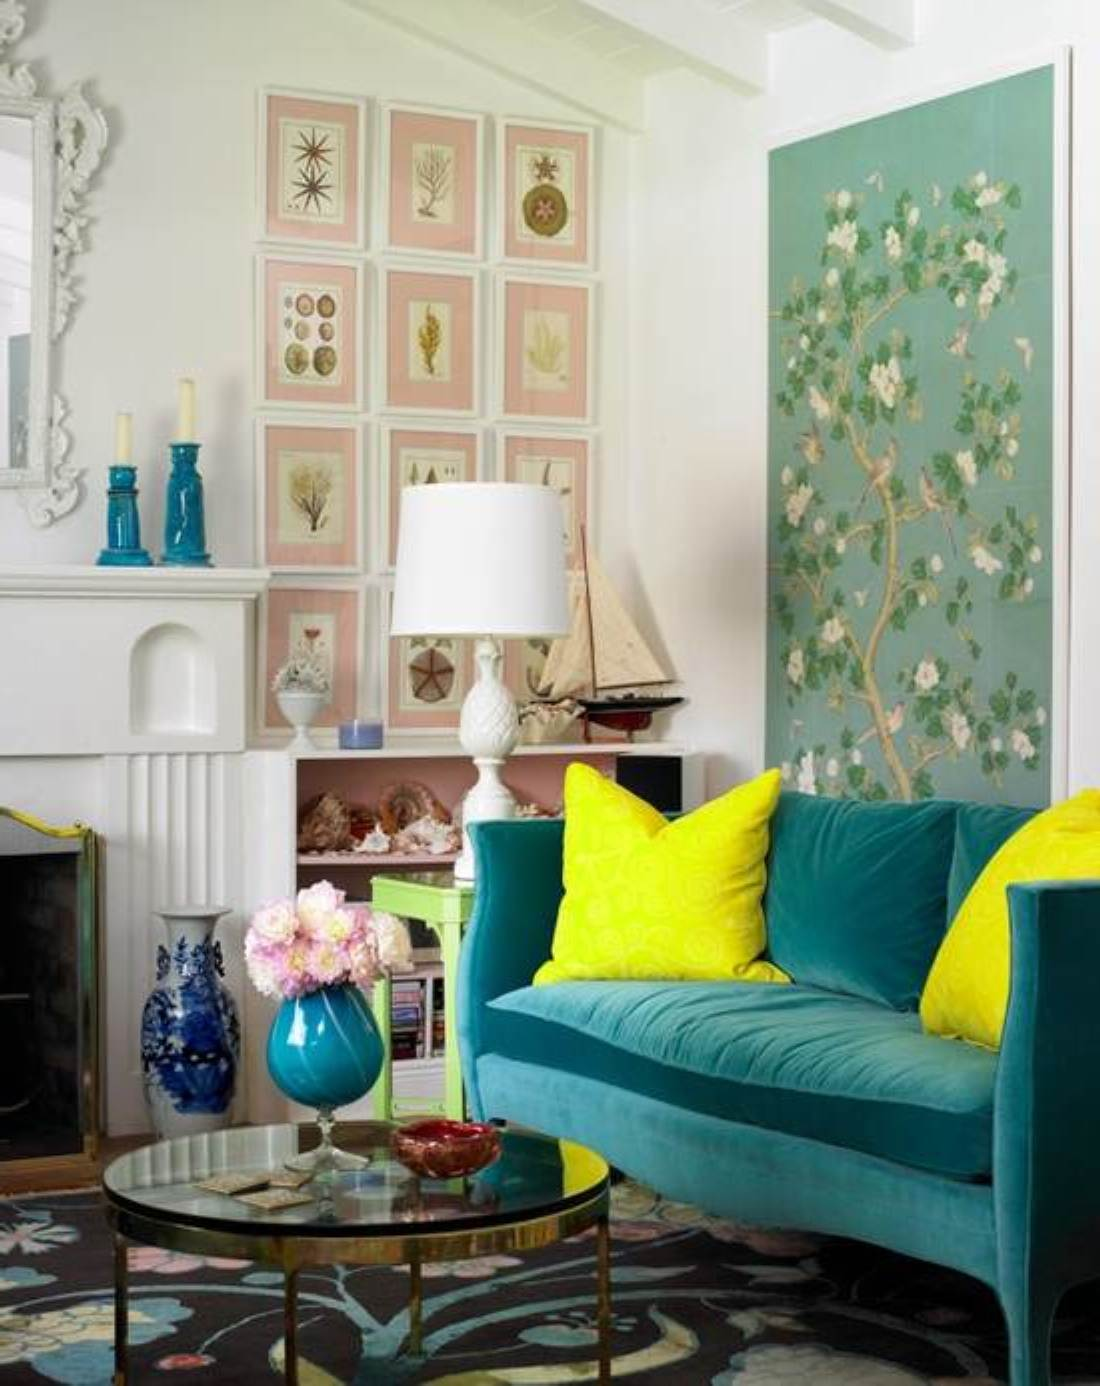 Some easy rules of small space decorating live diy ideas for Small room interior